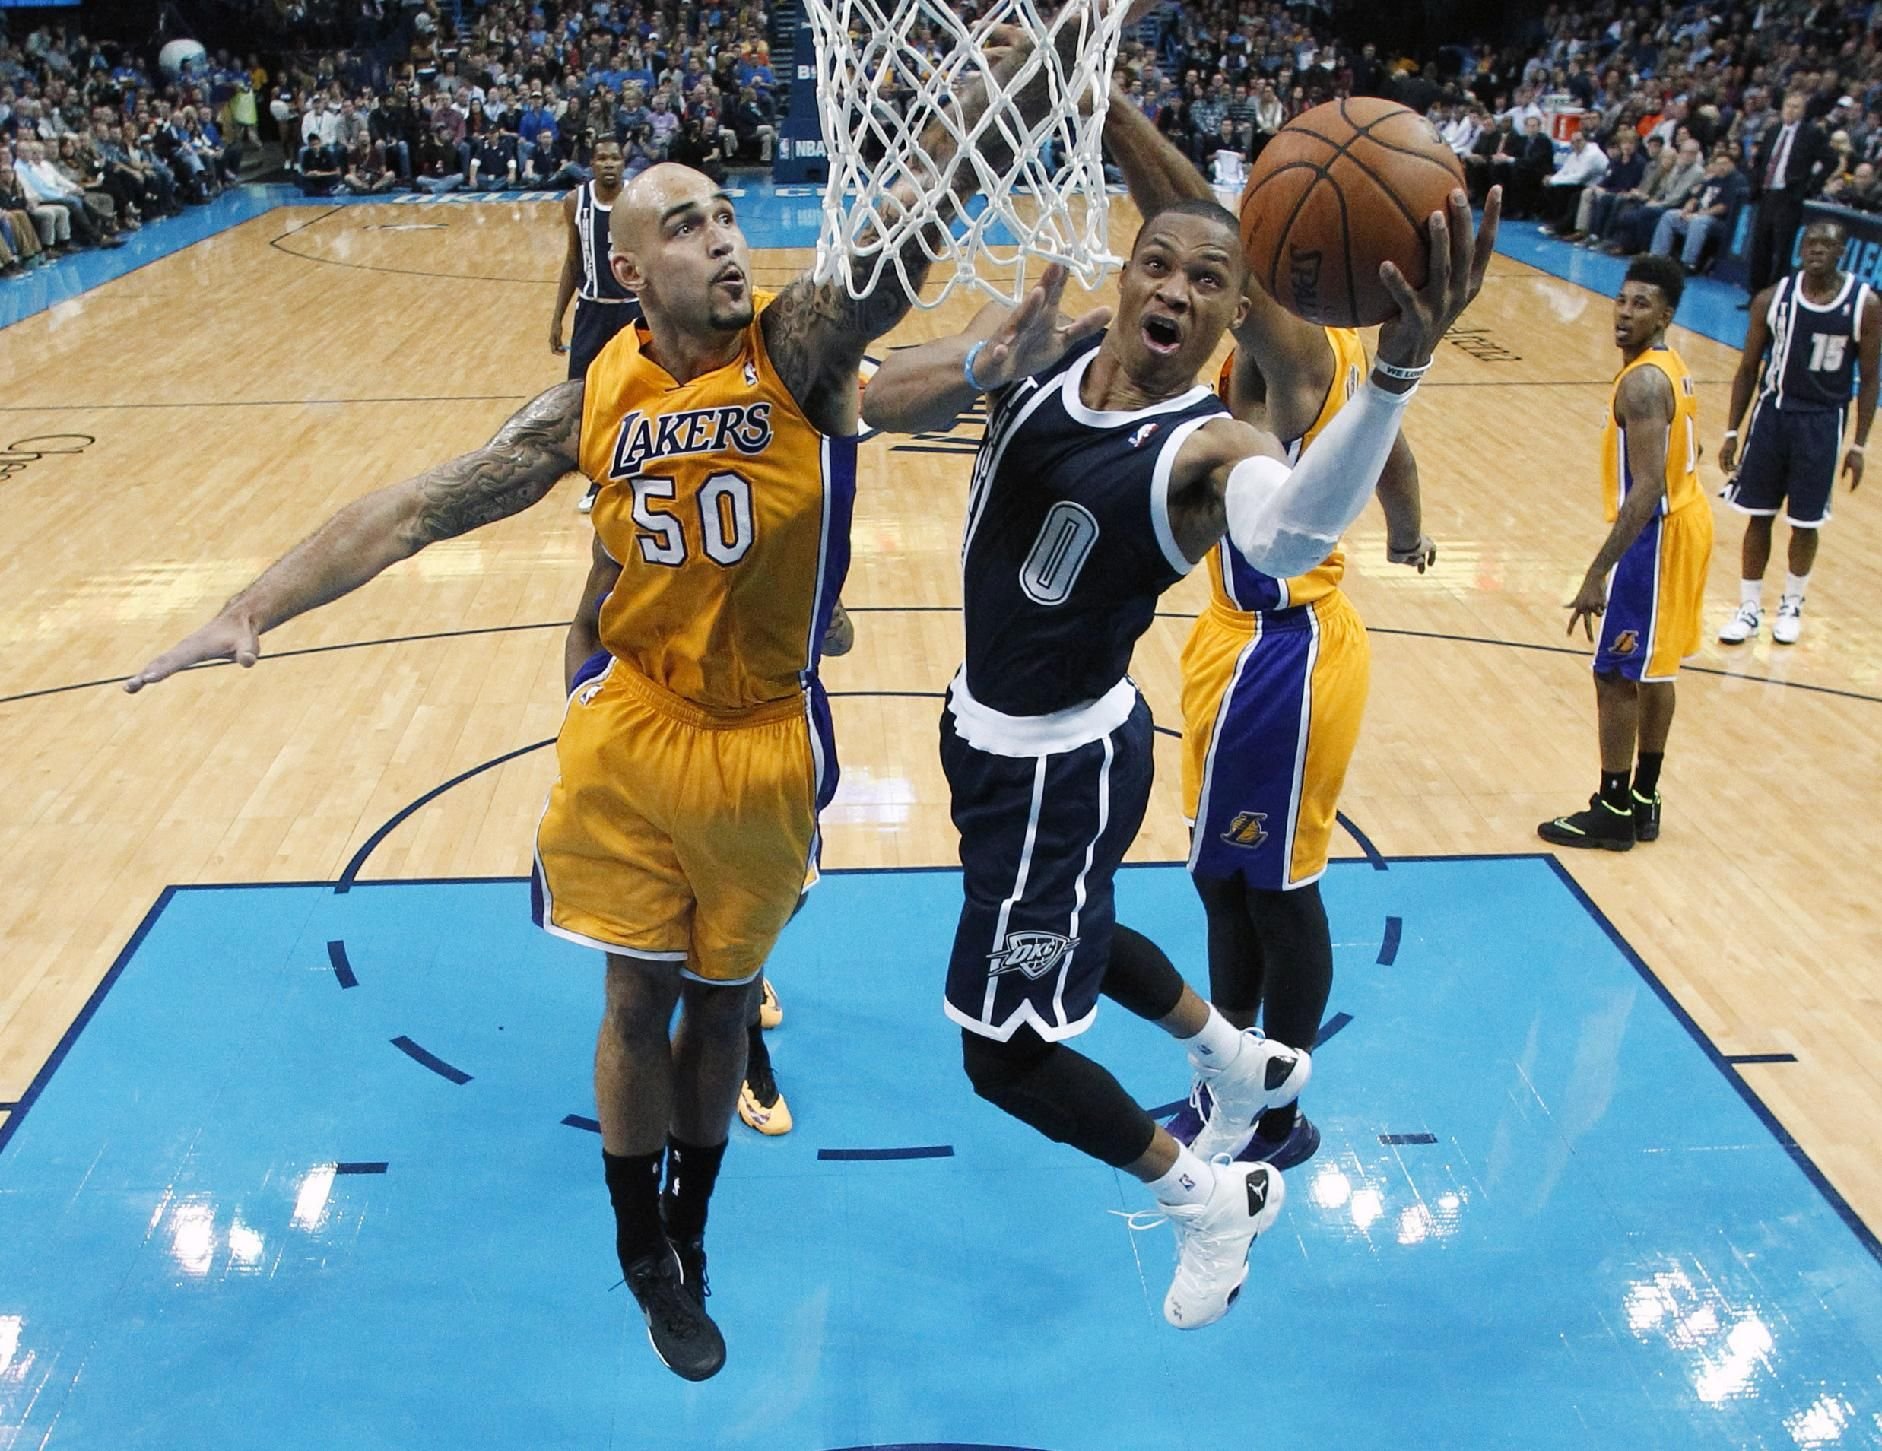 Oklahoma City Thunder guard Russell Westbrook (0) shoots in front of Los Angeles Lakers Robert Sacre (50) in the second quarter of an NBA basketball game in Oklahoma City, Friday, Dec. 13, 2013. Oklahoma City won 122-97. (AP Photo/Sue Ogrocki)